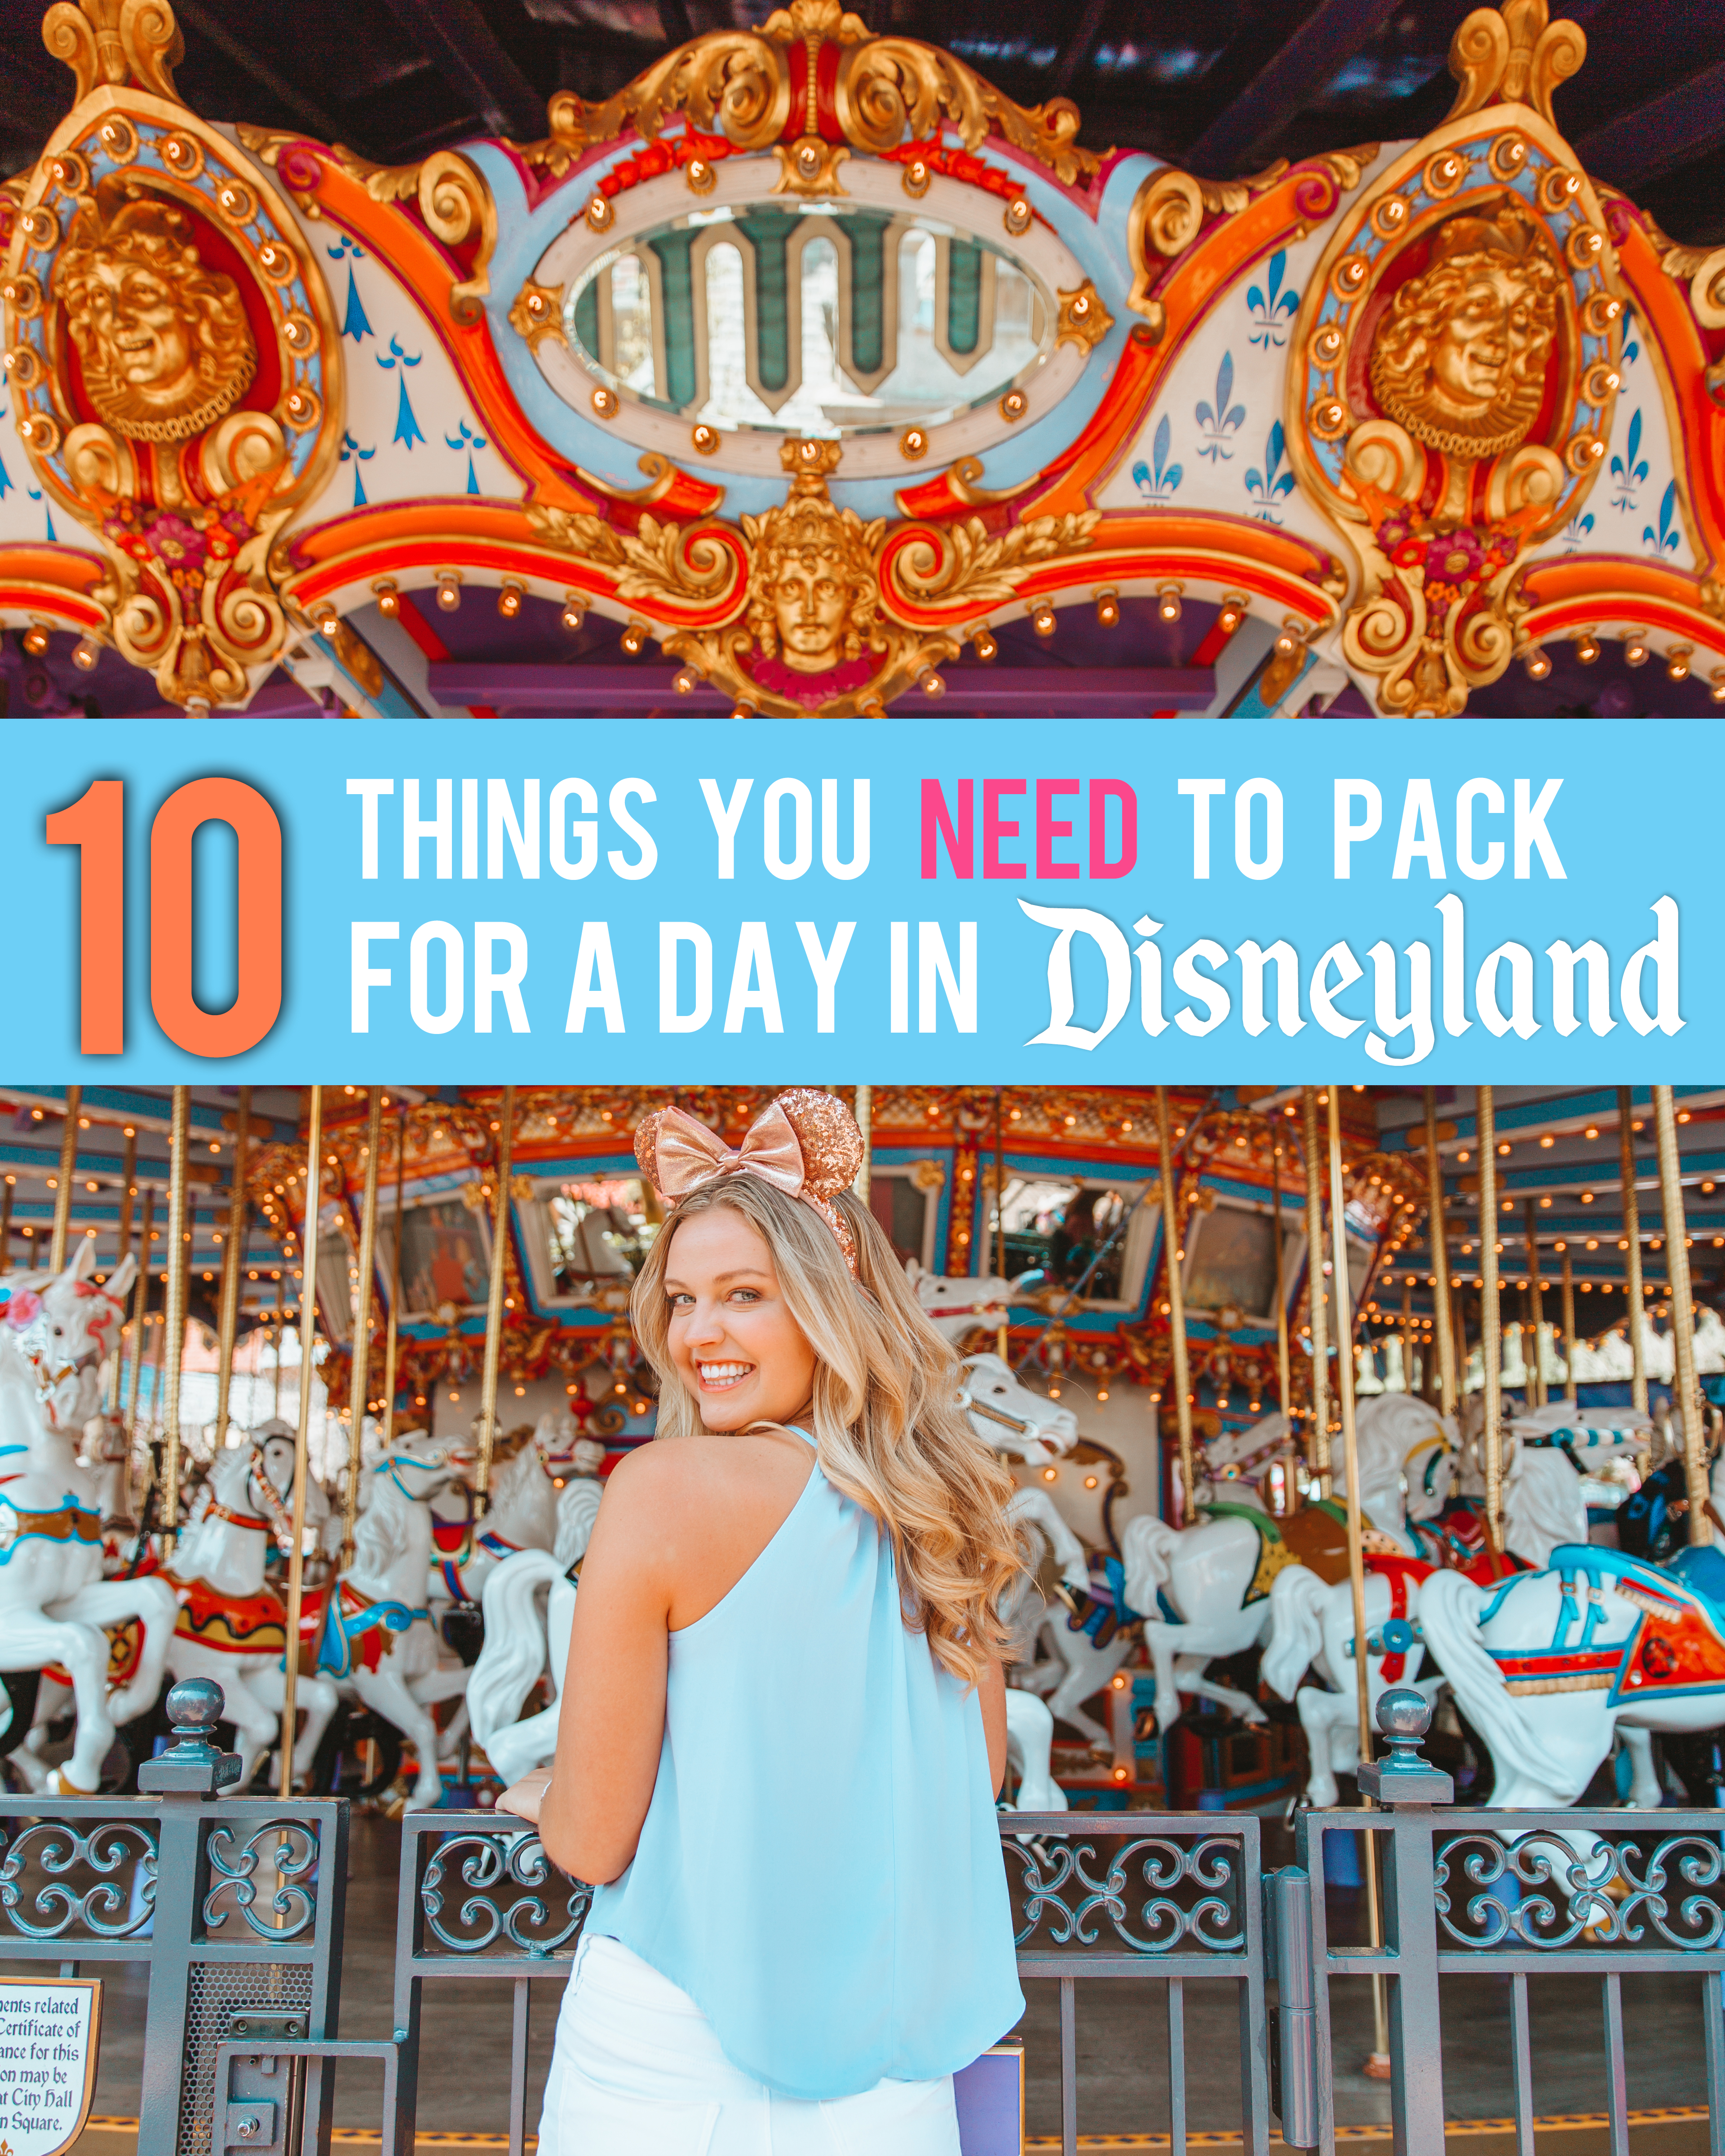 10 things you NEED to pack for a day in Disneyland